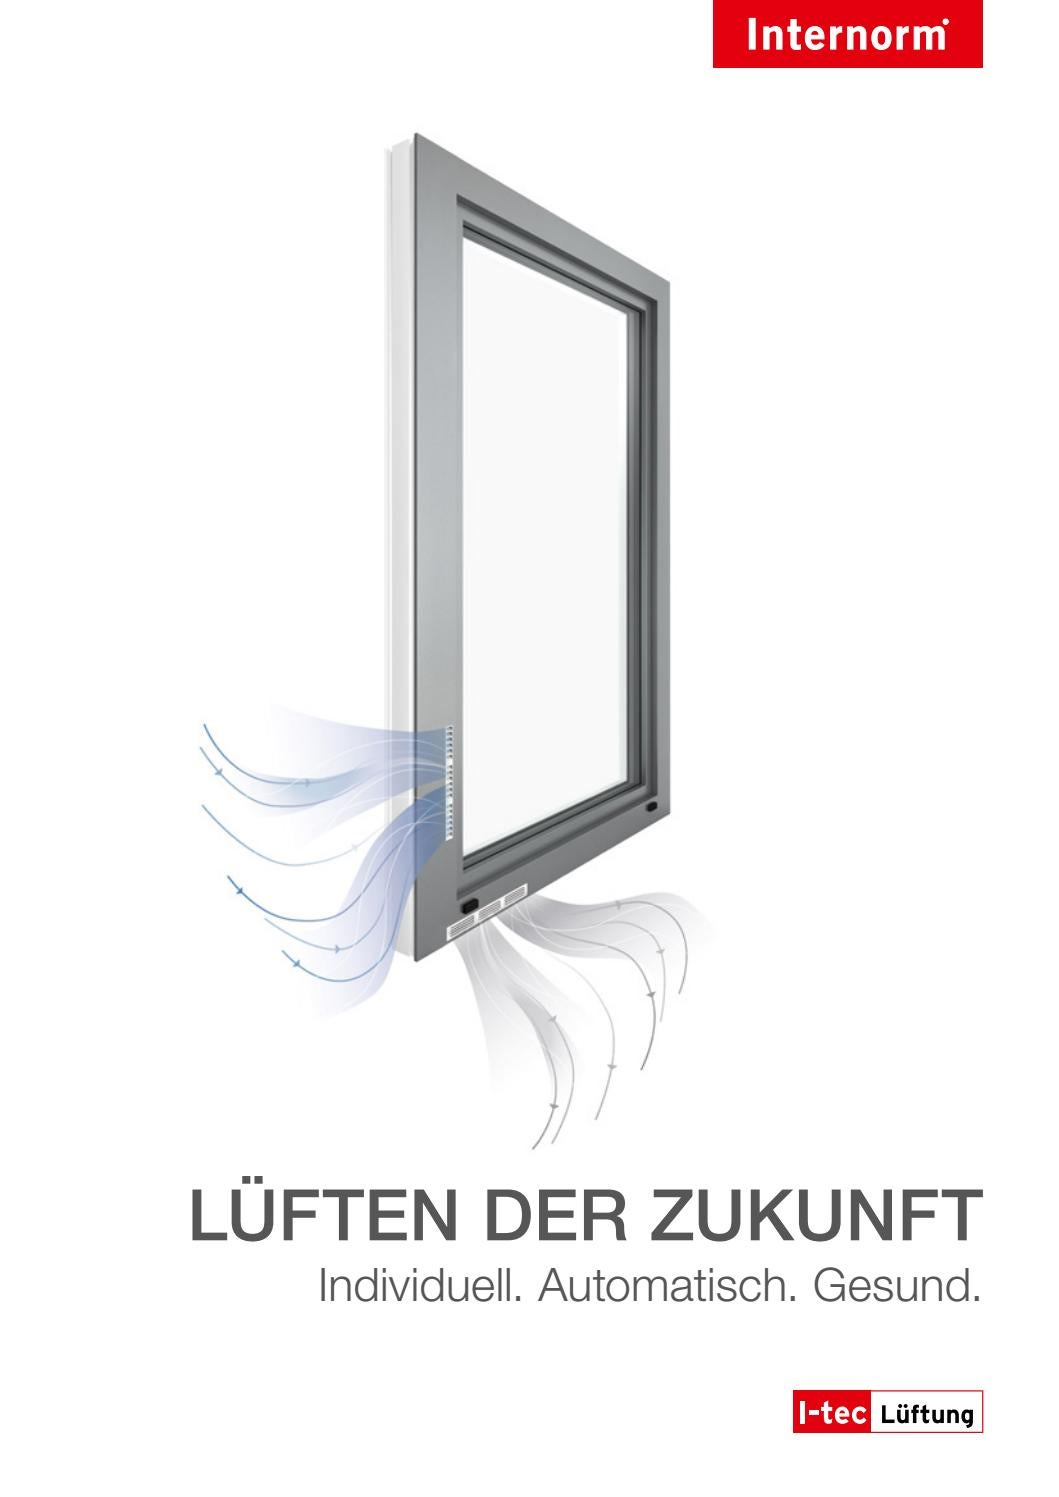 internorm folder i tec l ftung im fenster integrierte l ftung by internorm windows doors issuu. Black Bedroom Furniture Sets. Home Design Ideas